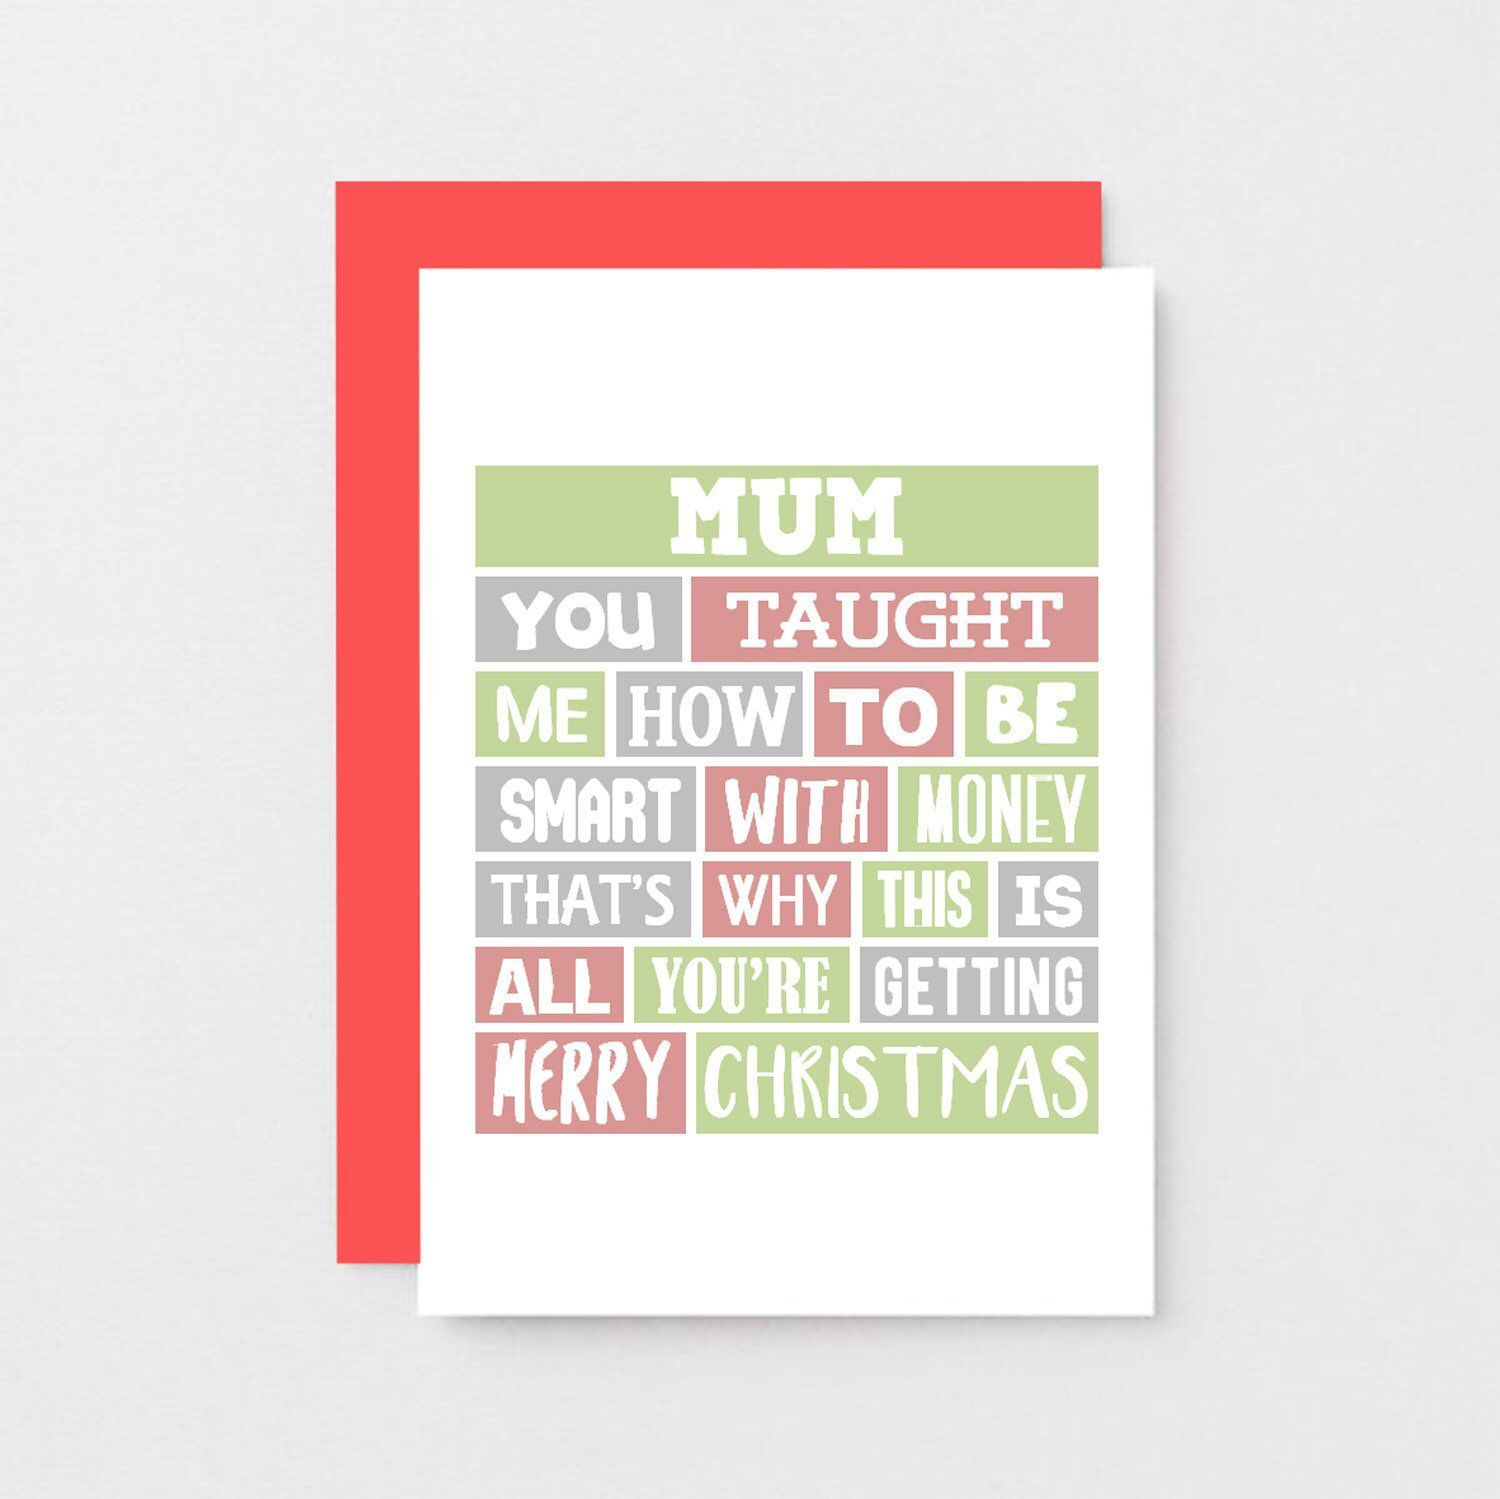 Funny Mum Christmas Card For Mum From Son Merry Christmas Mum From Daughter Christmas Car Funny Xmas Cards Funny Christmas Cards Christmas Presents For Dad